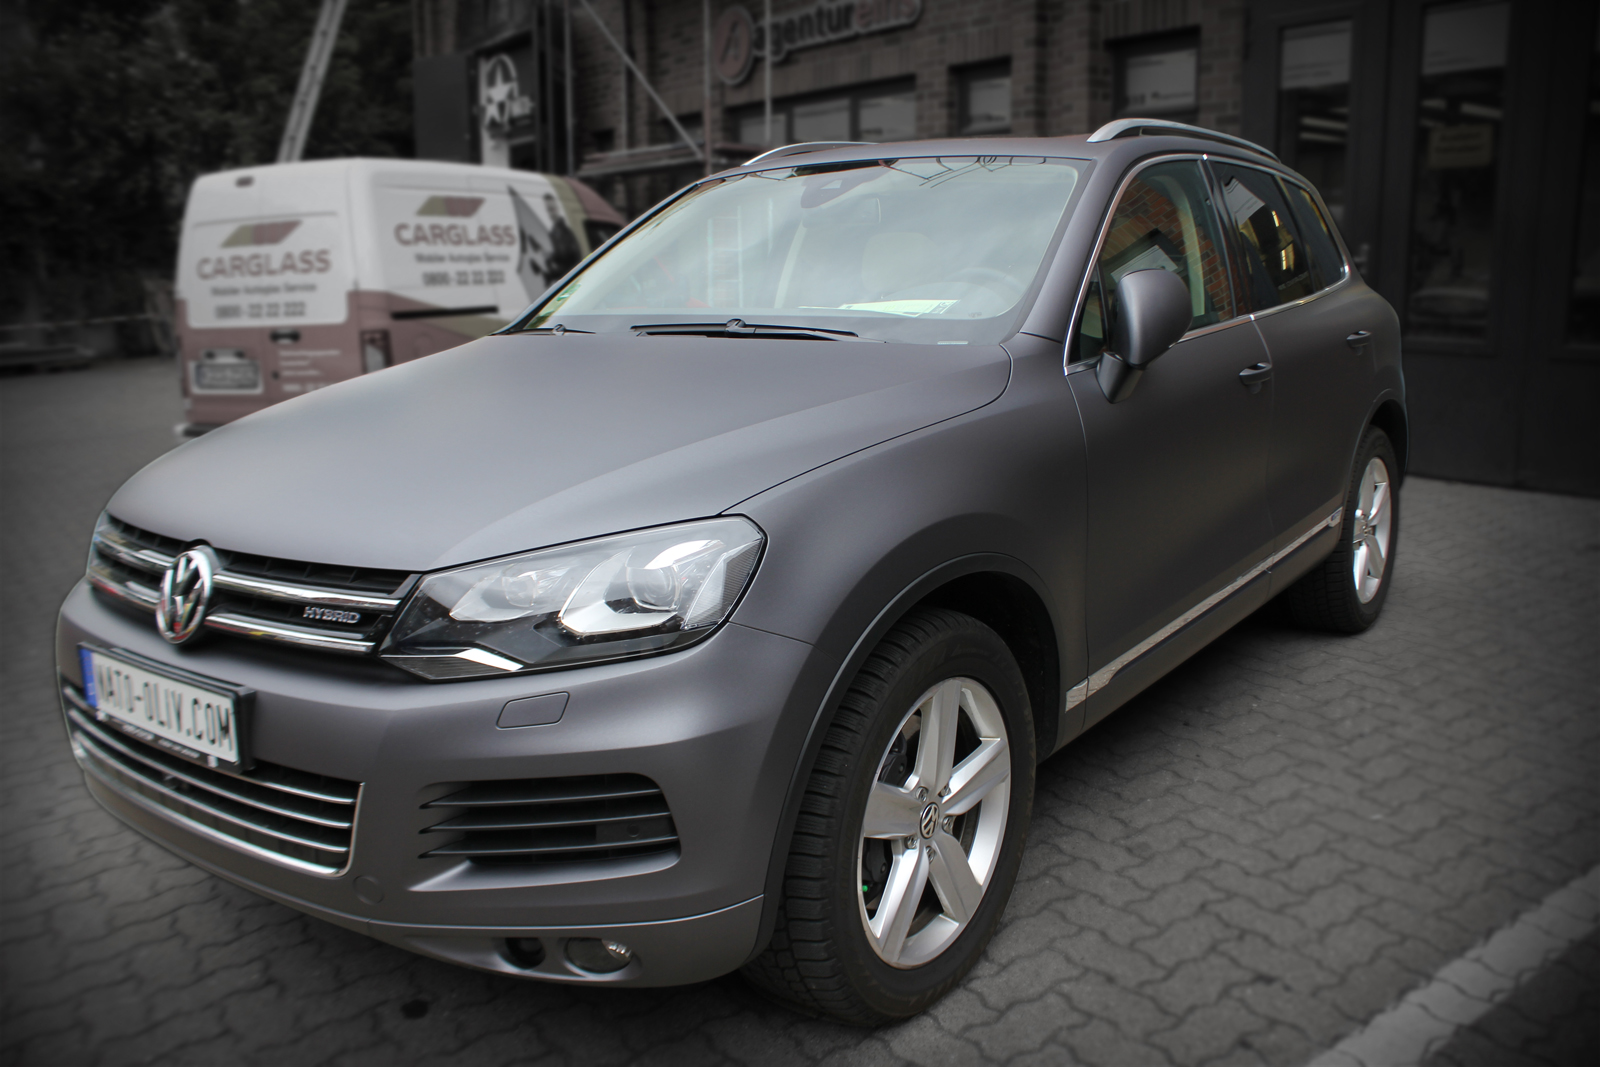 vw touareg in anthrazit metallic matt nato. Black Bedroom Furniture Sets. Home Design Ideas